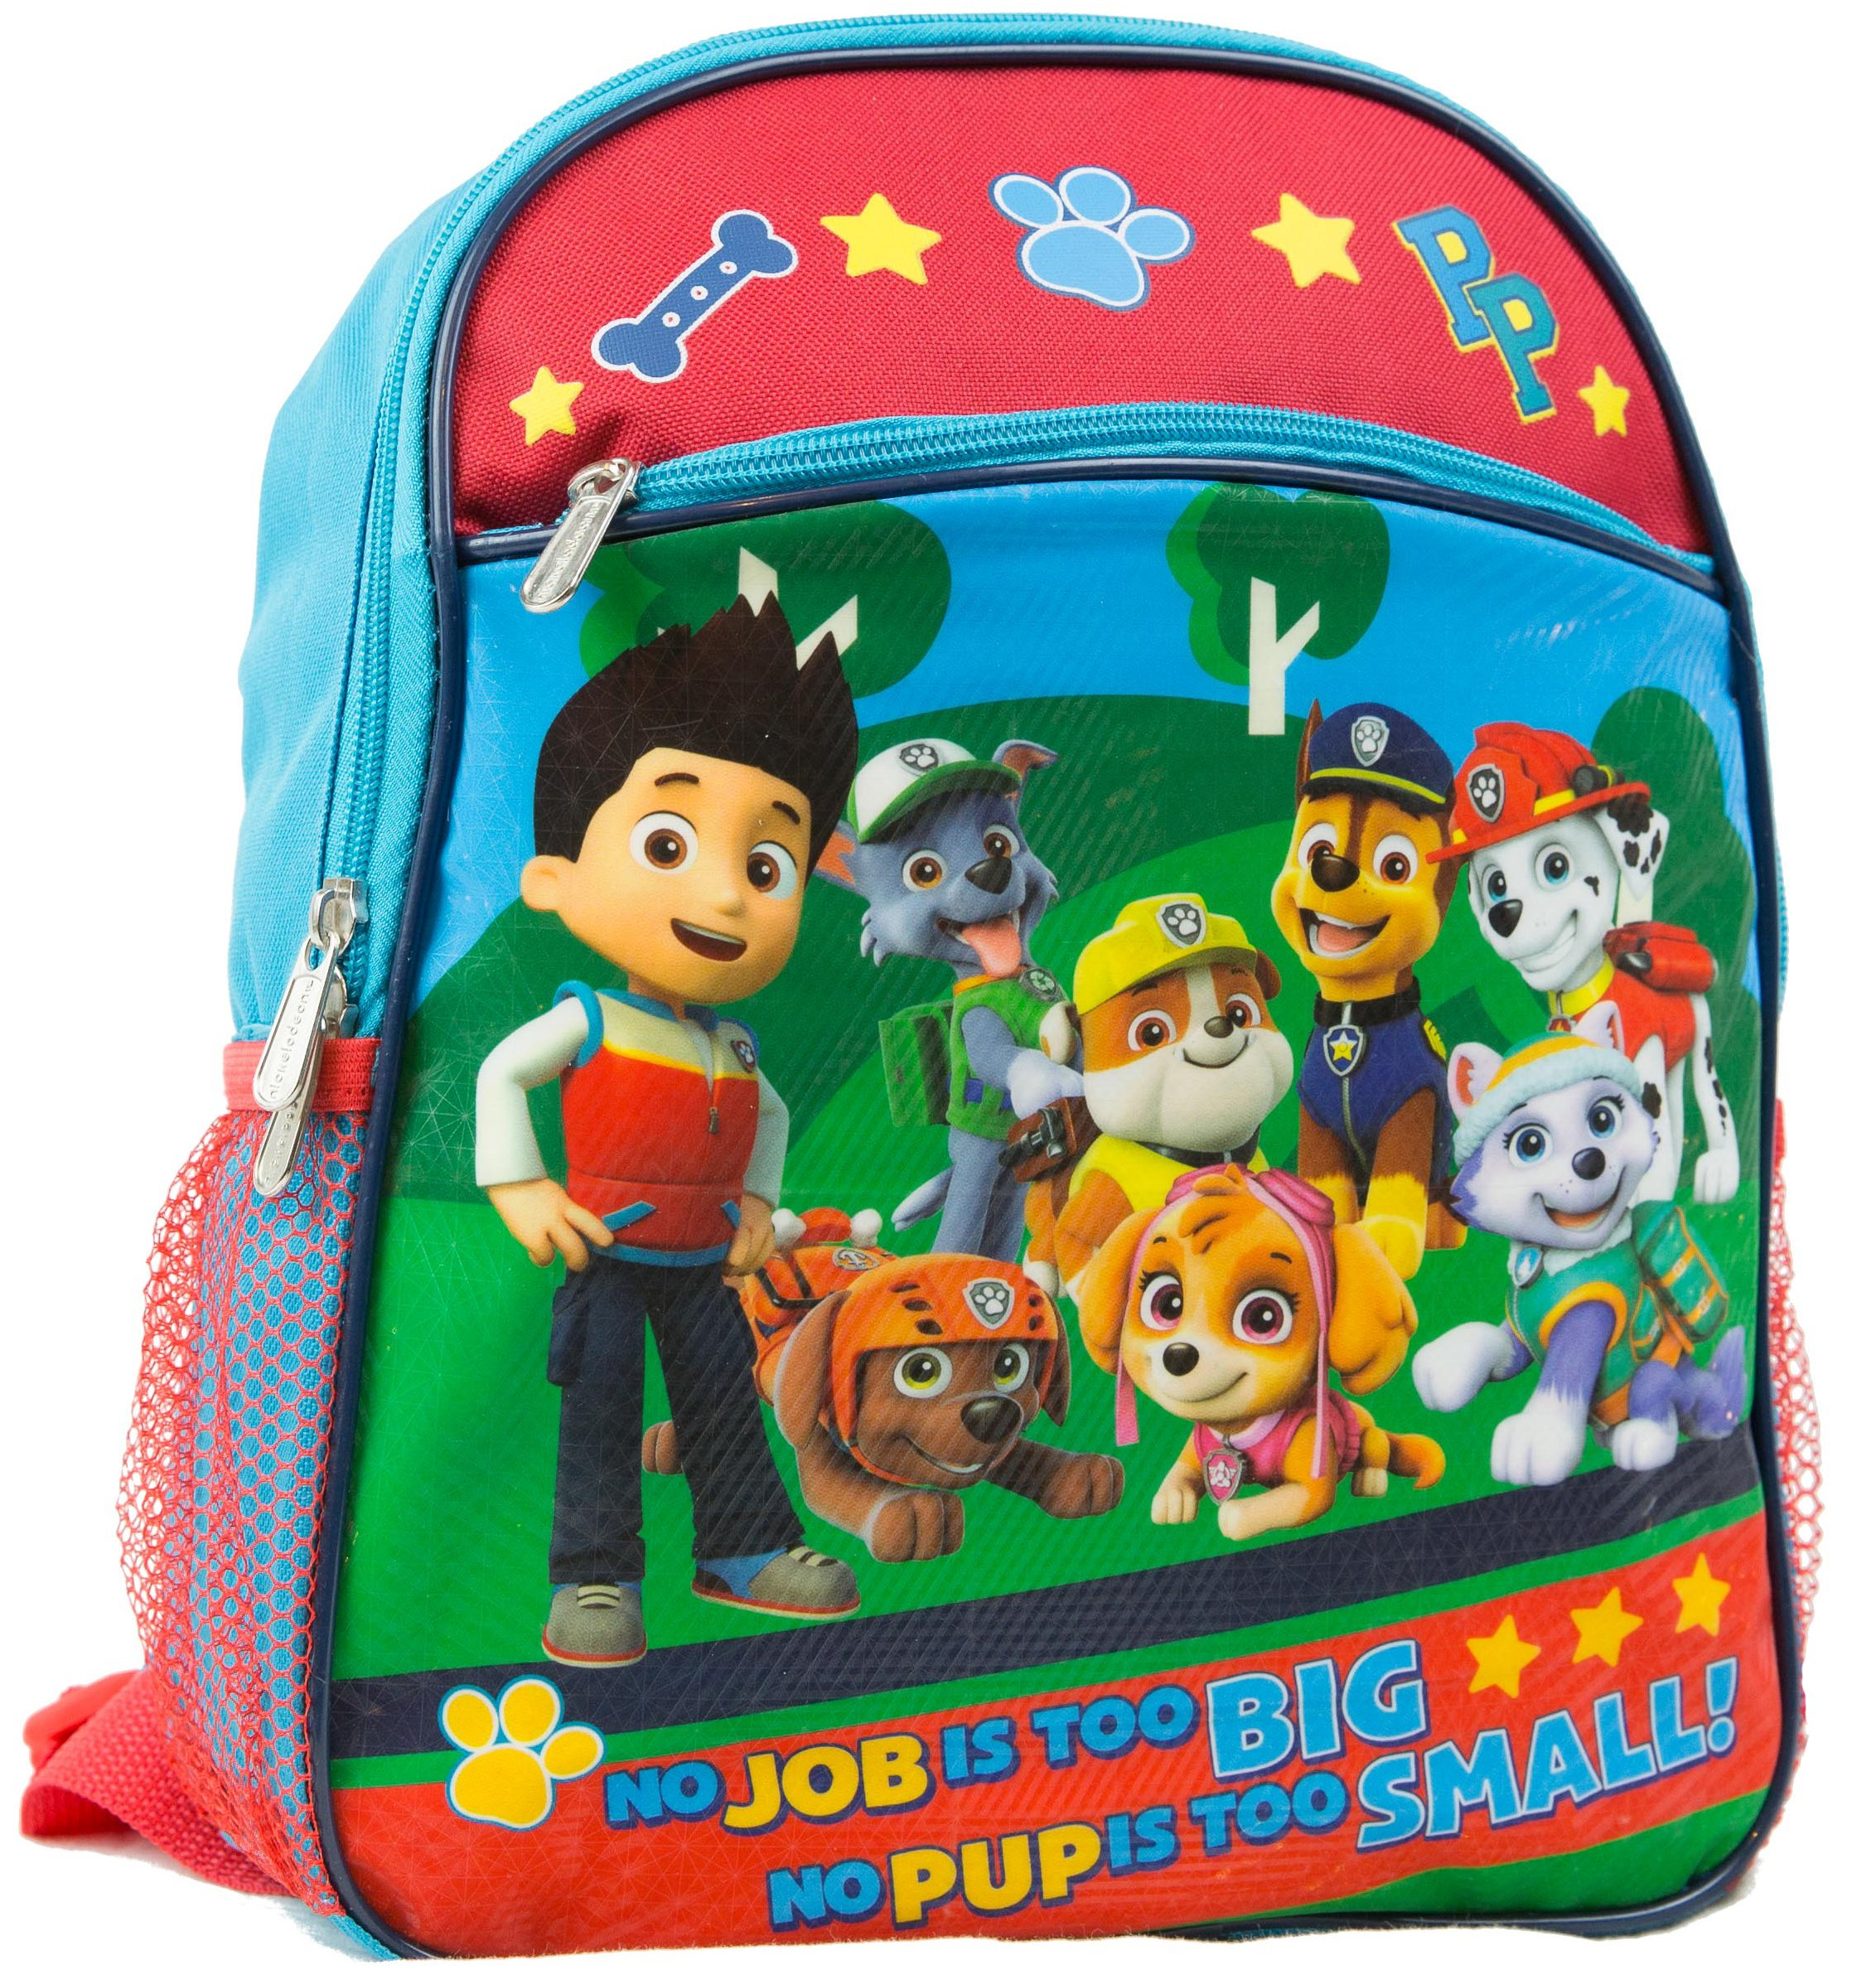 Nickelodeon Paw Patrol 12'' Toddler Backpack With 8 Paw Patrol Characters Pictured On Front by Nick Jr